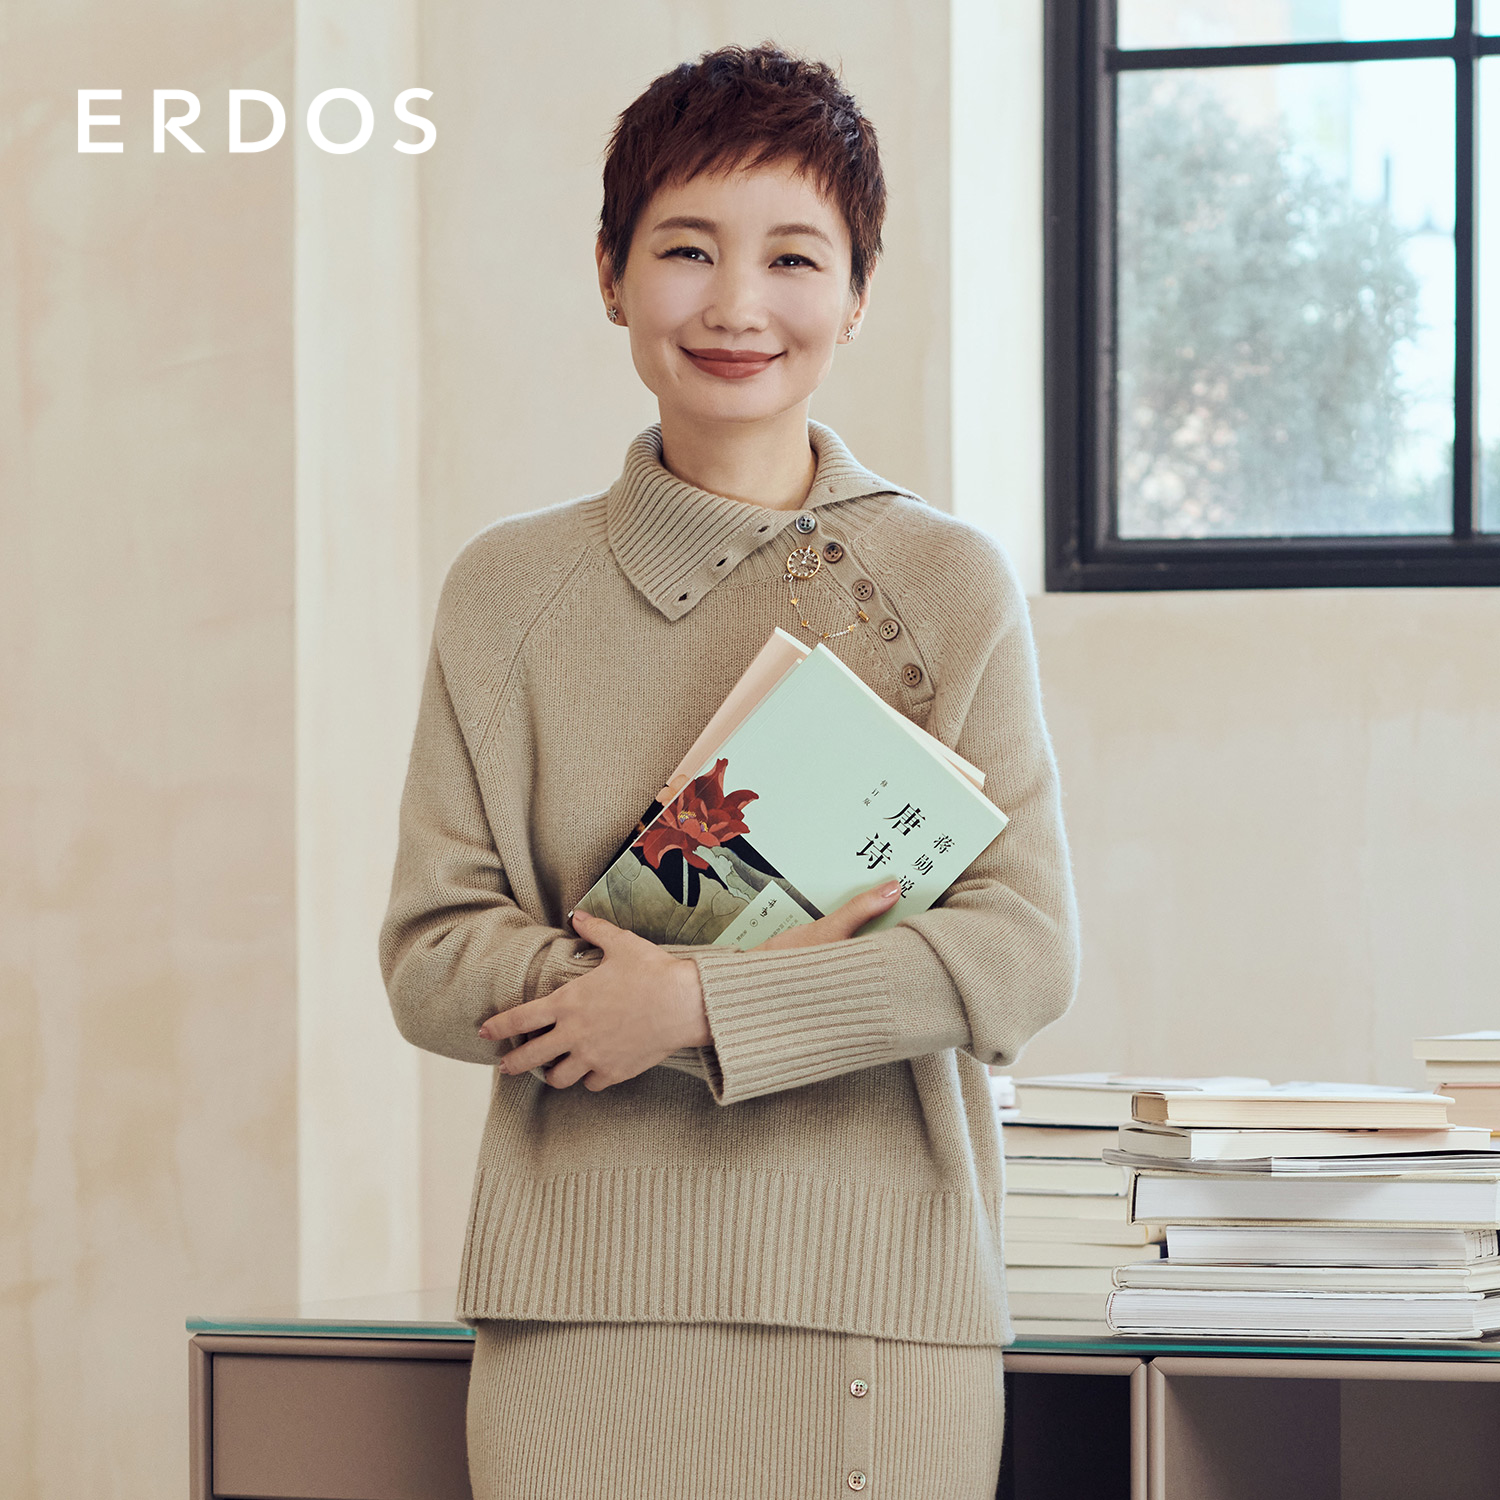 ERDOS E series 20 autumn and winter new products shoulder sleeves fashion stiletto neck liner sweater